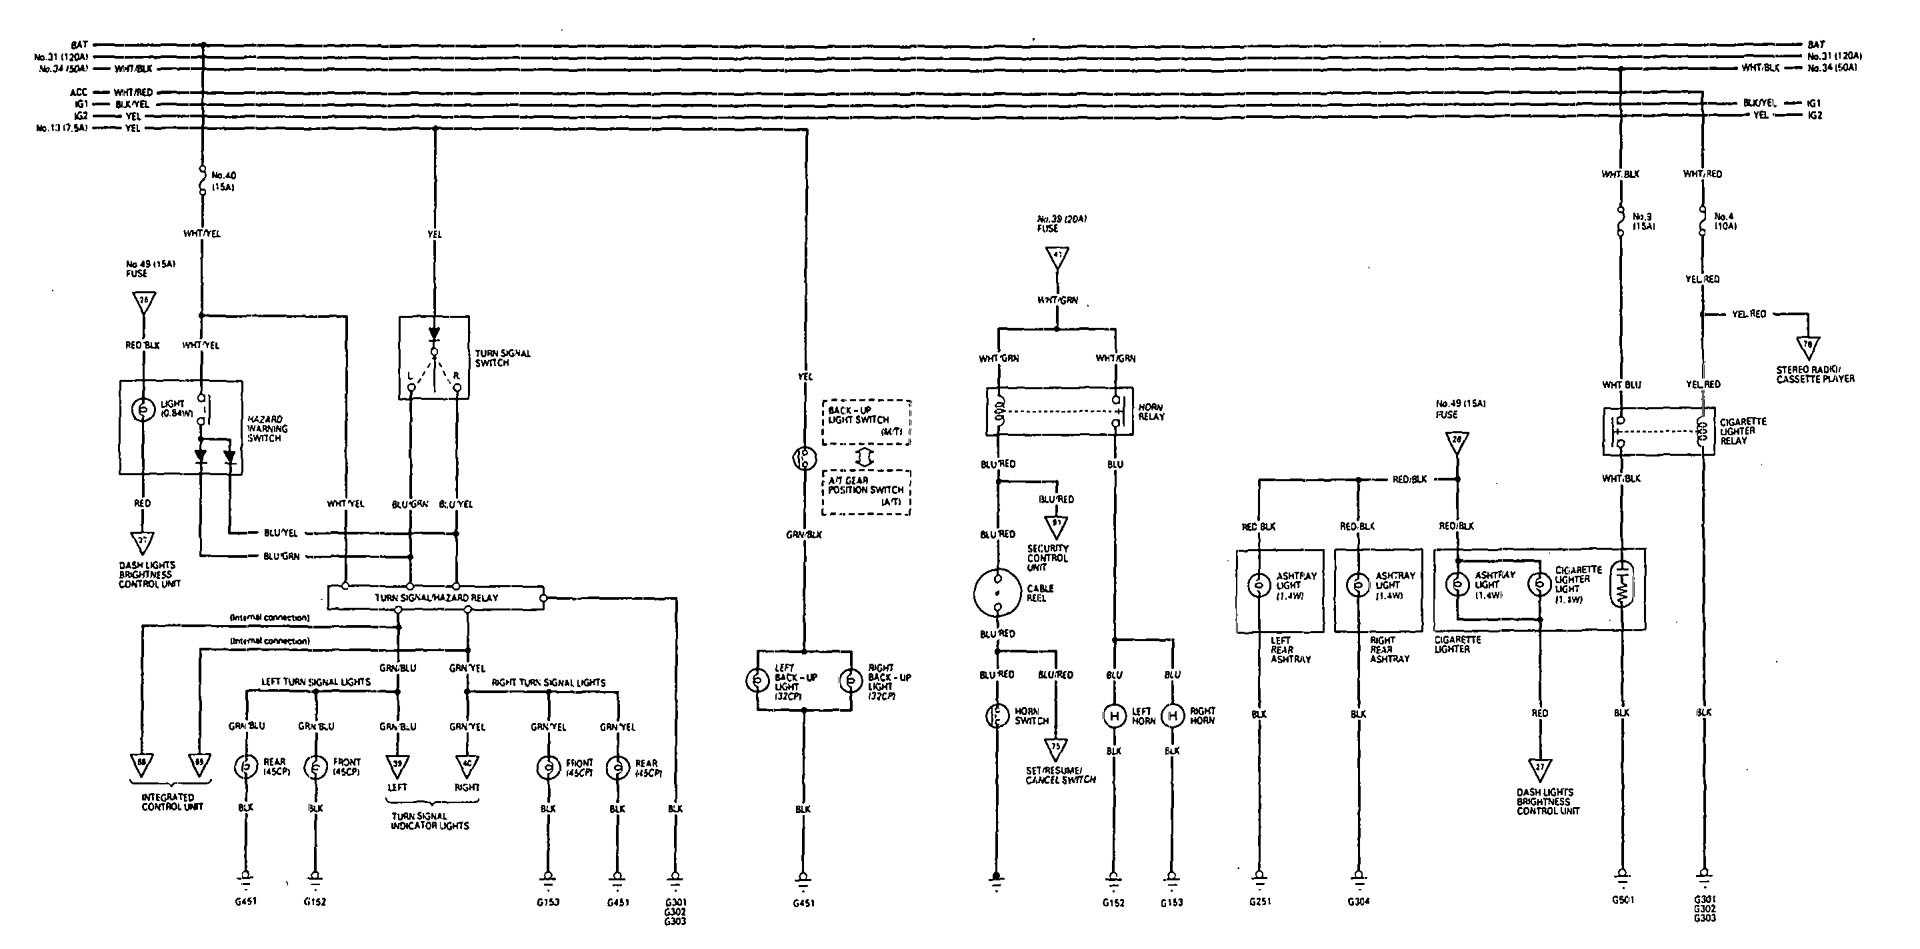 Acura Legend  1993  - Wiring Diagram